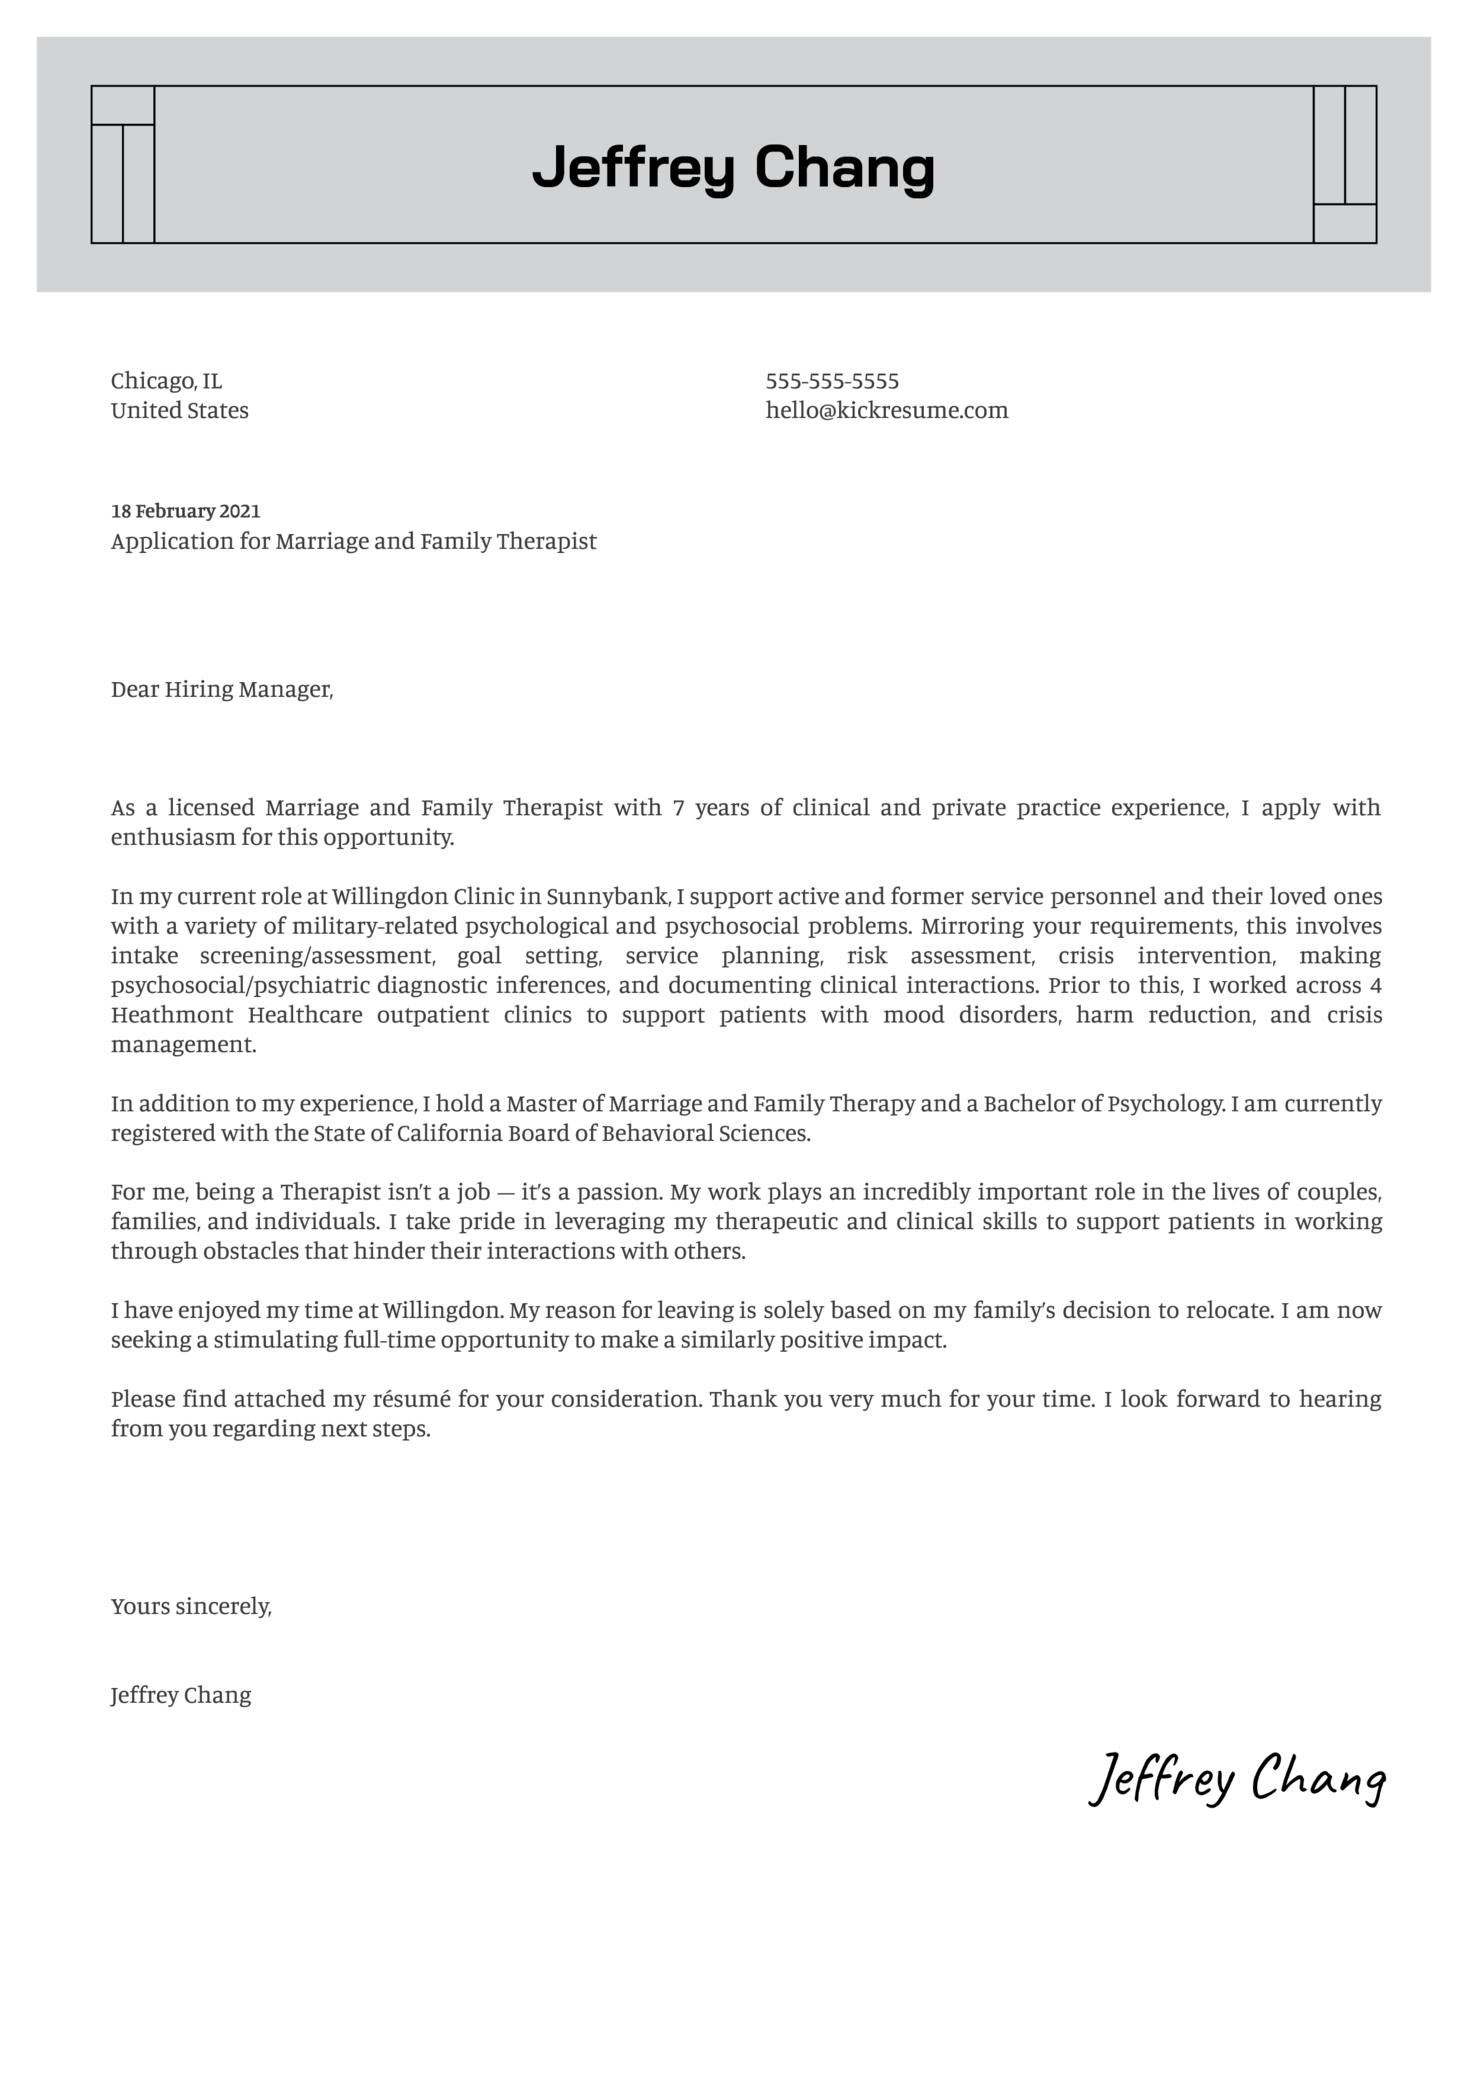 Marriage and Family Therapist Cover Letter Sample